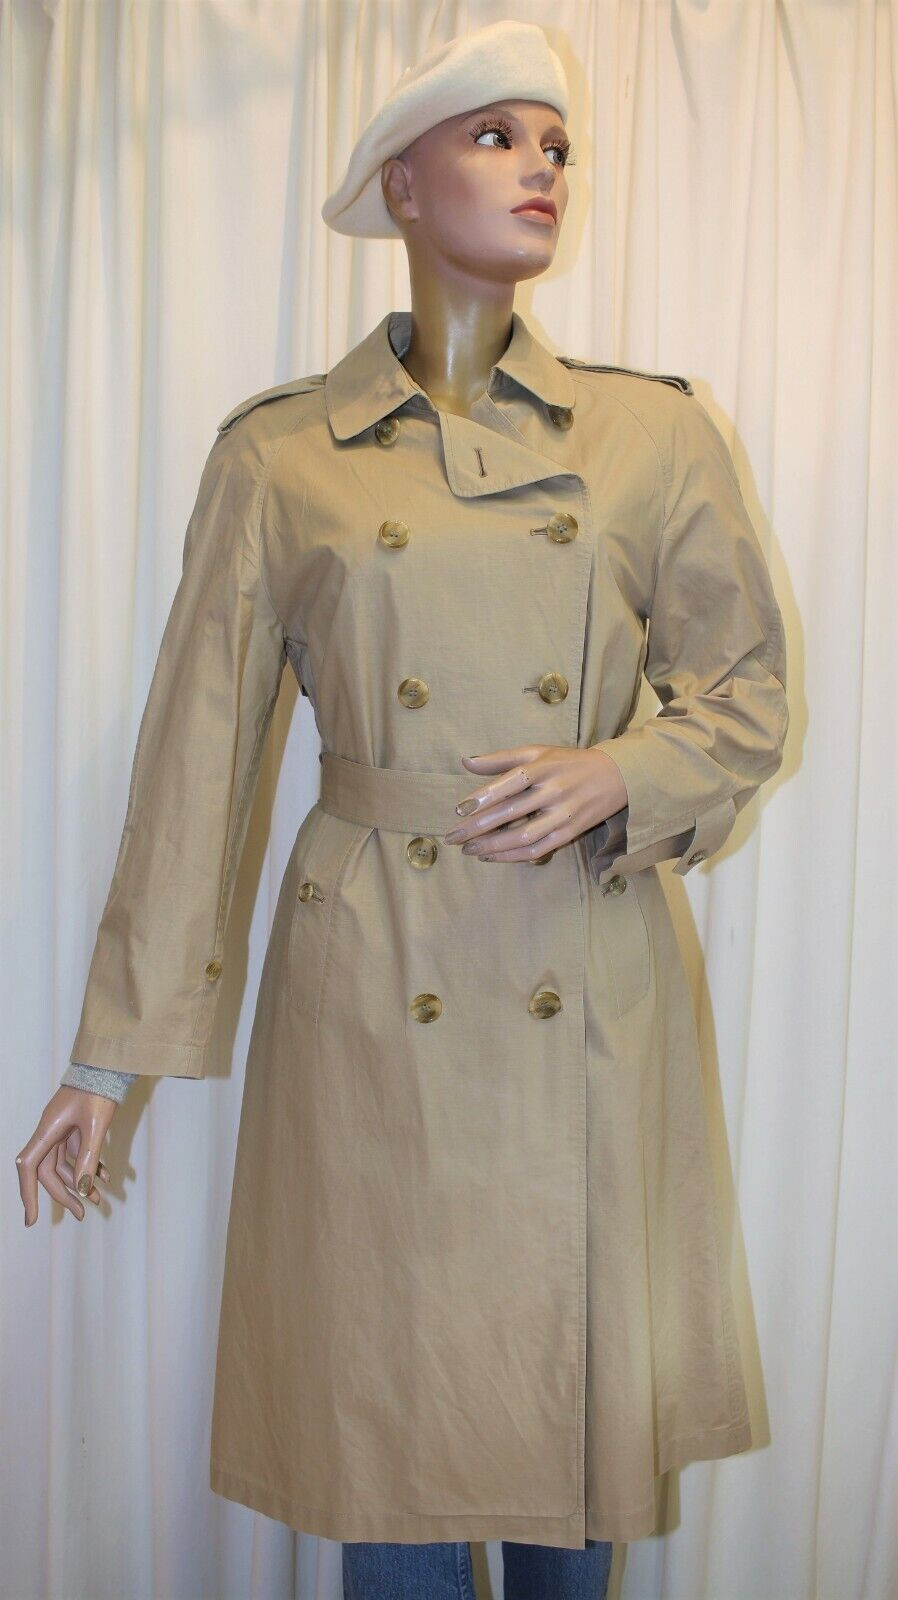 Trench imperméable burberry's vintage 70's 100% coton beige t42 made in england